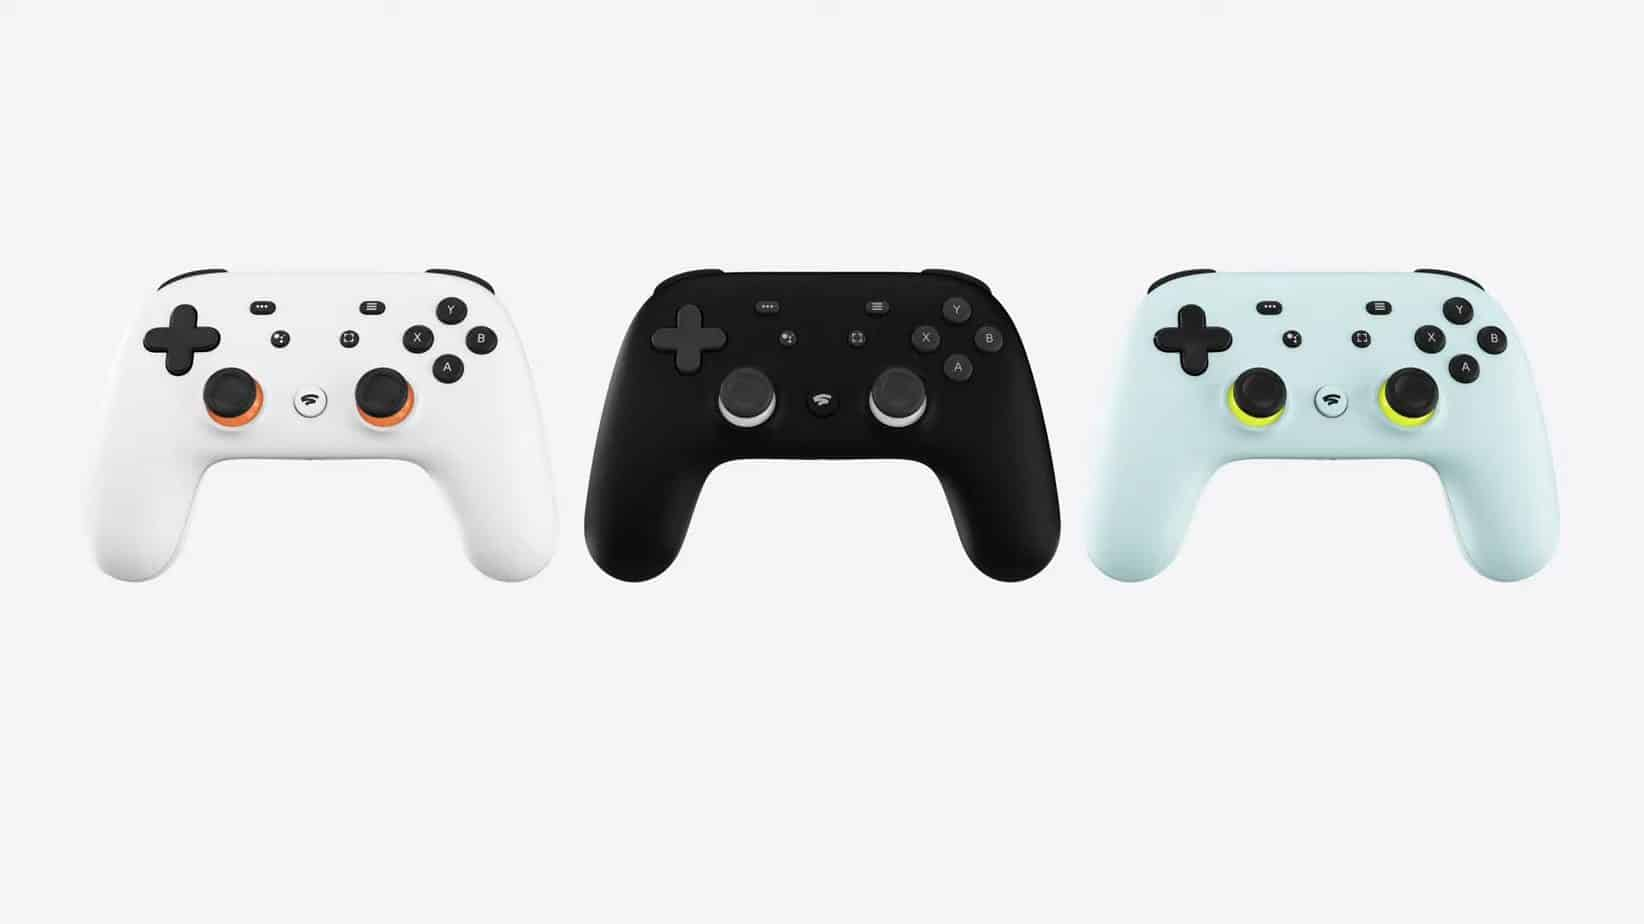 The Stadia Controller.